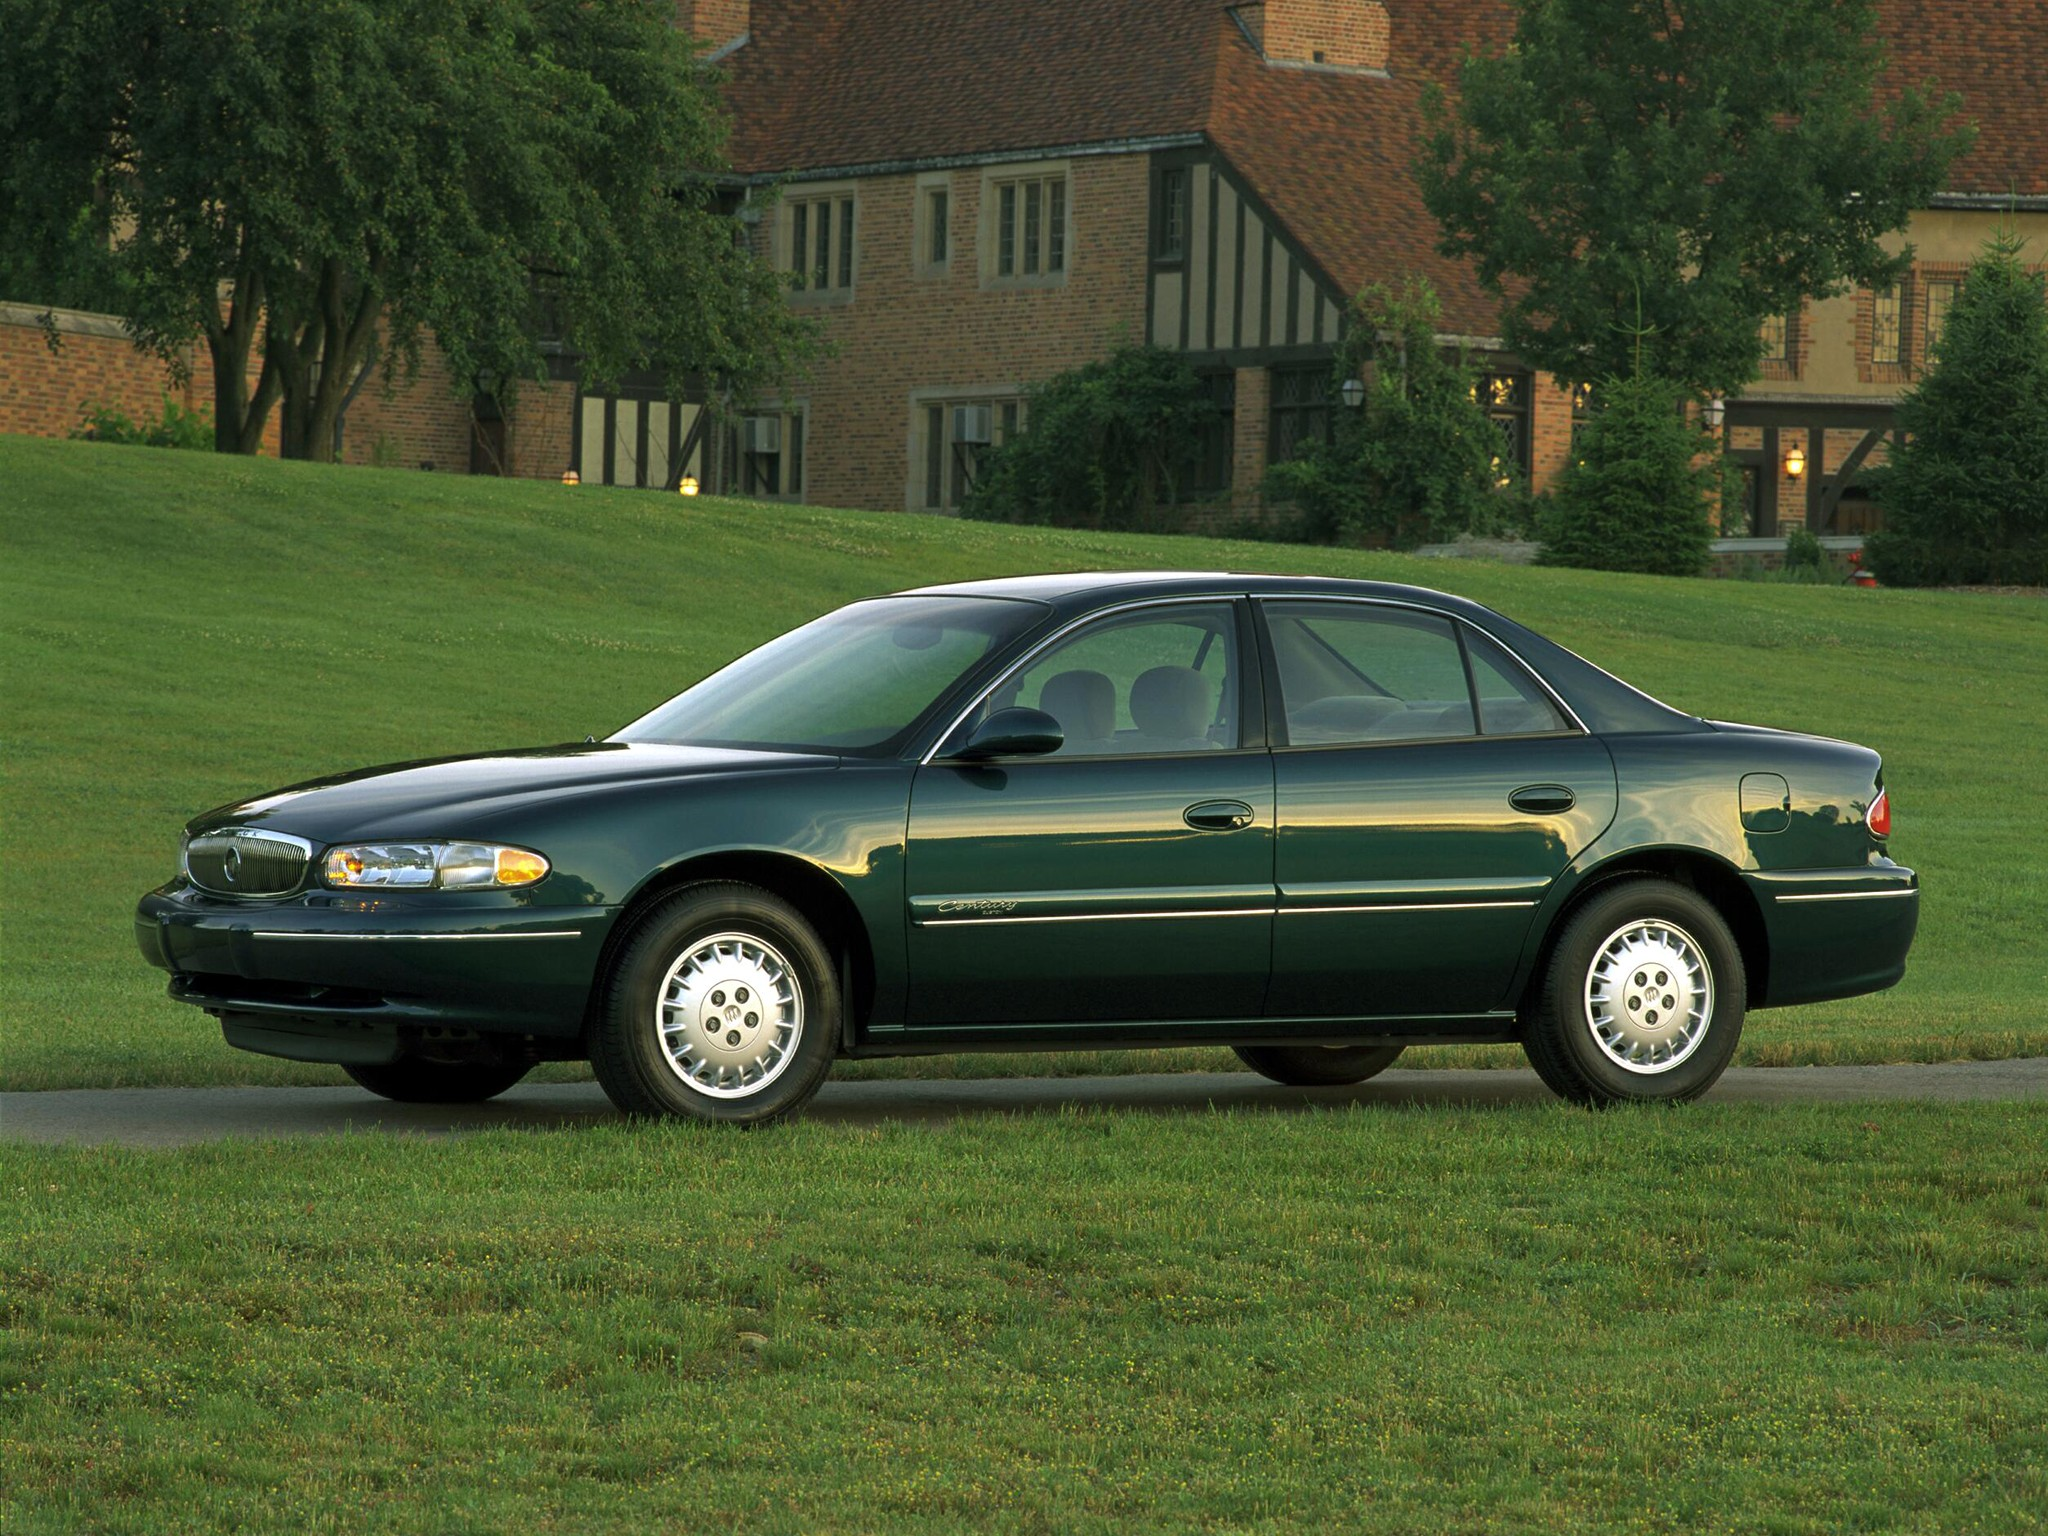 Buick centry photo - 7